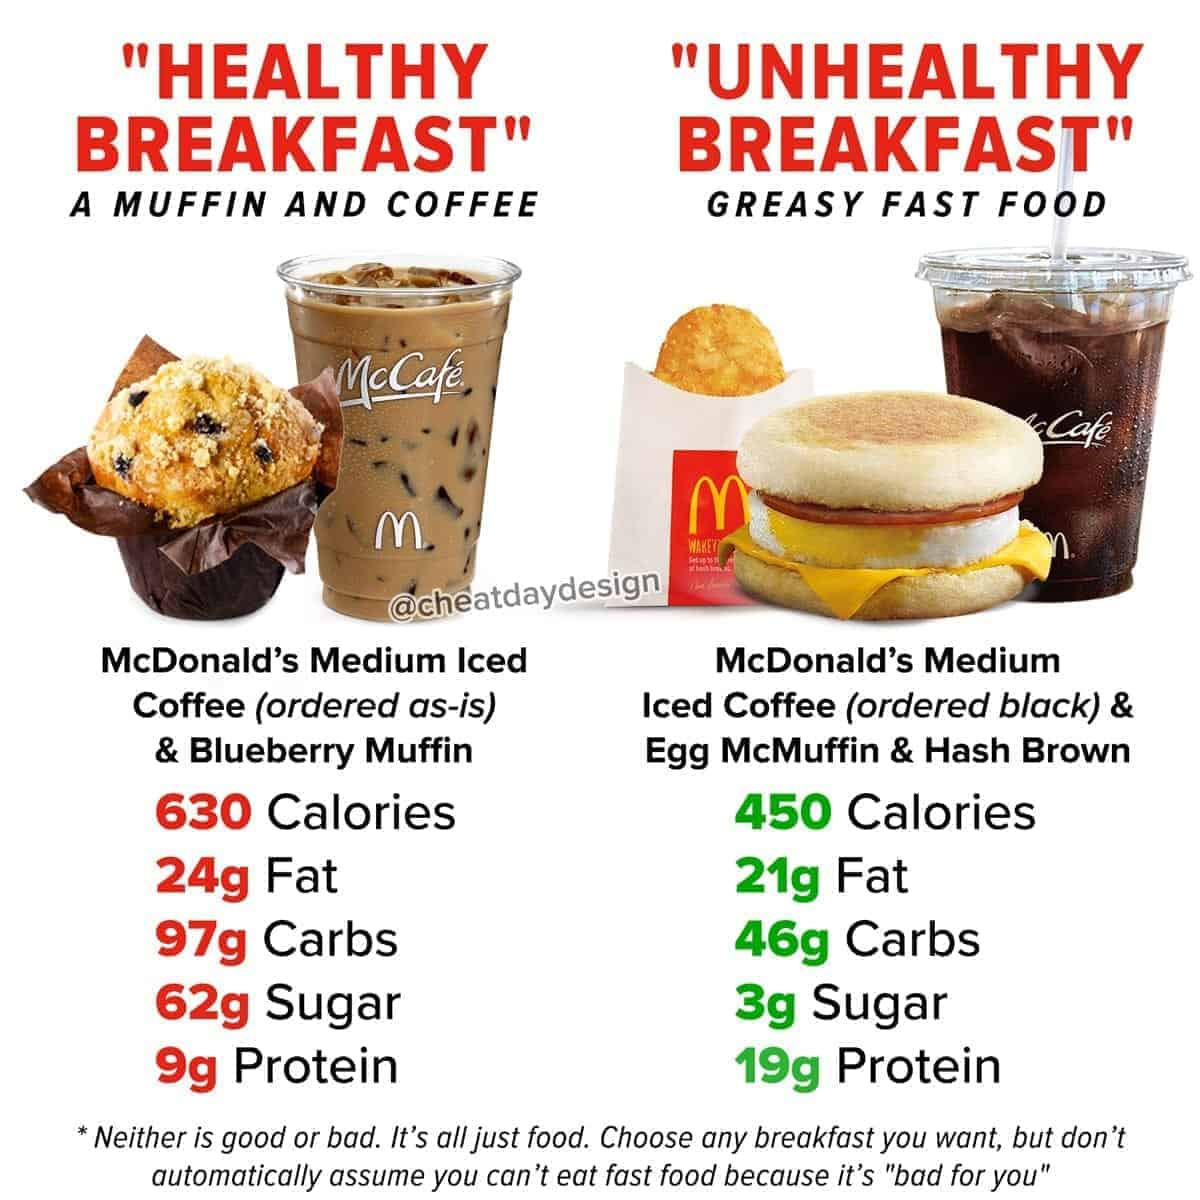 Fast Food Breakfast Comparison